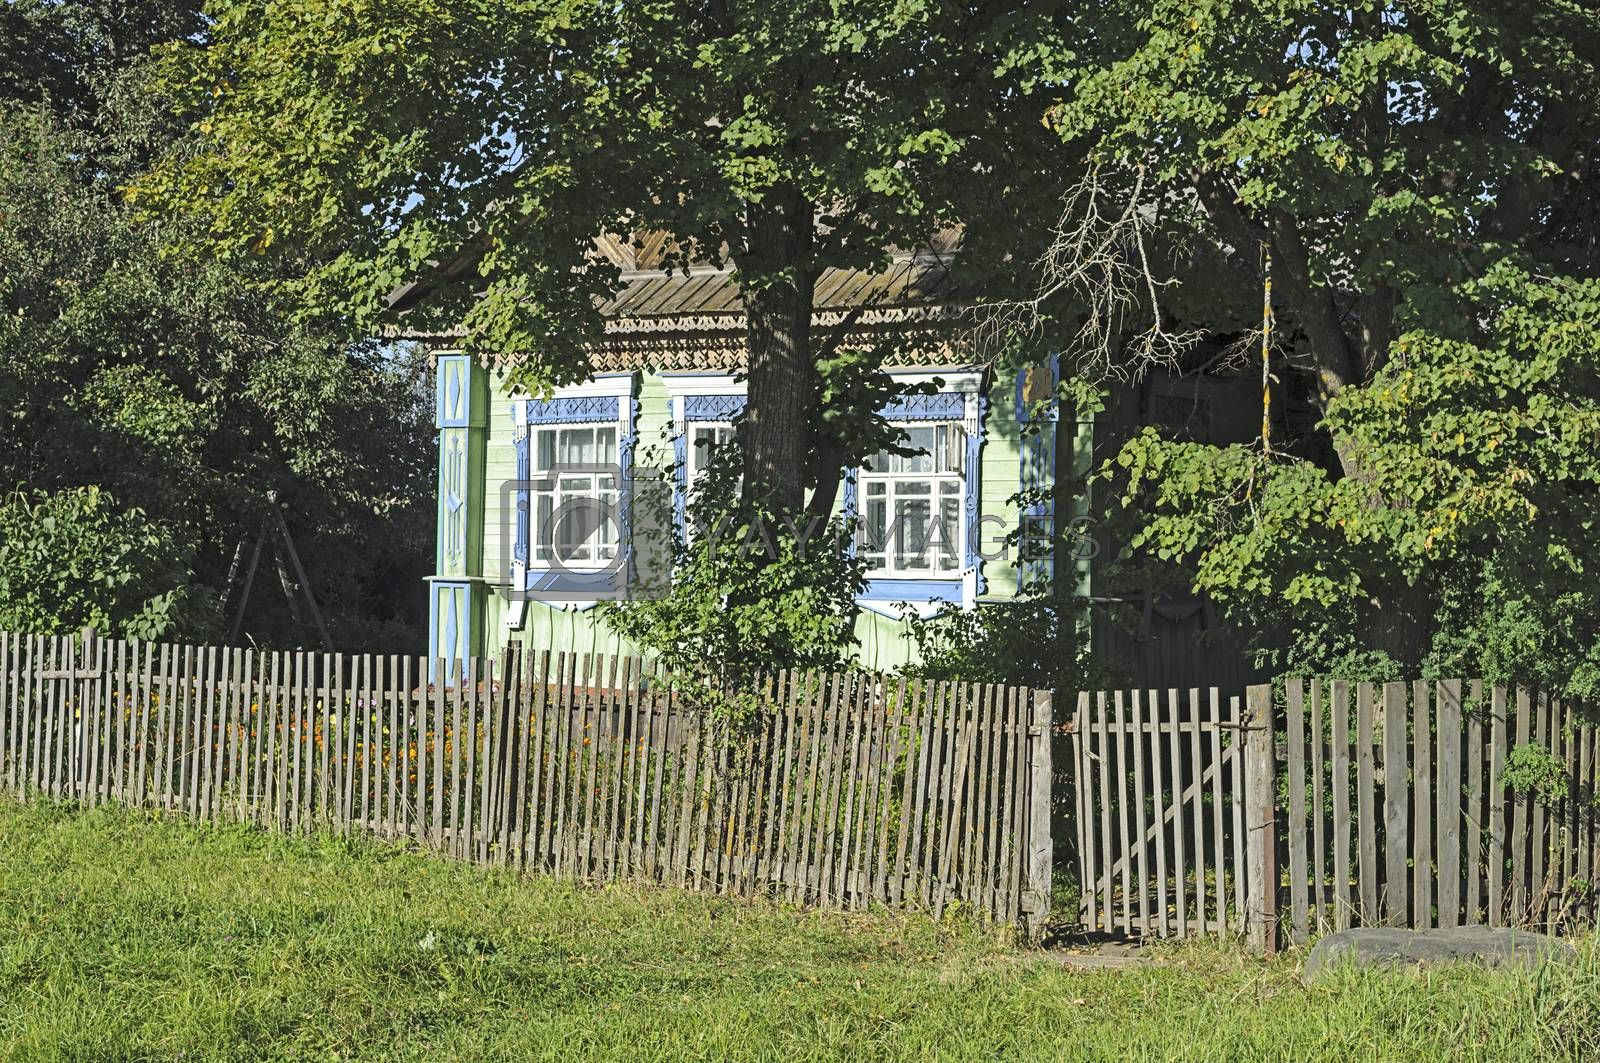 Small village house in shade of trees behind the old wooden fence